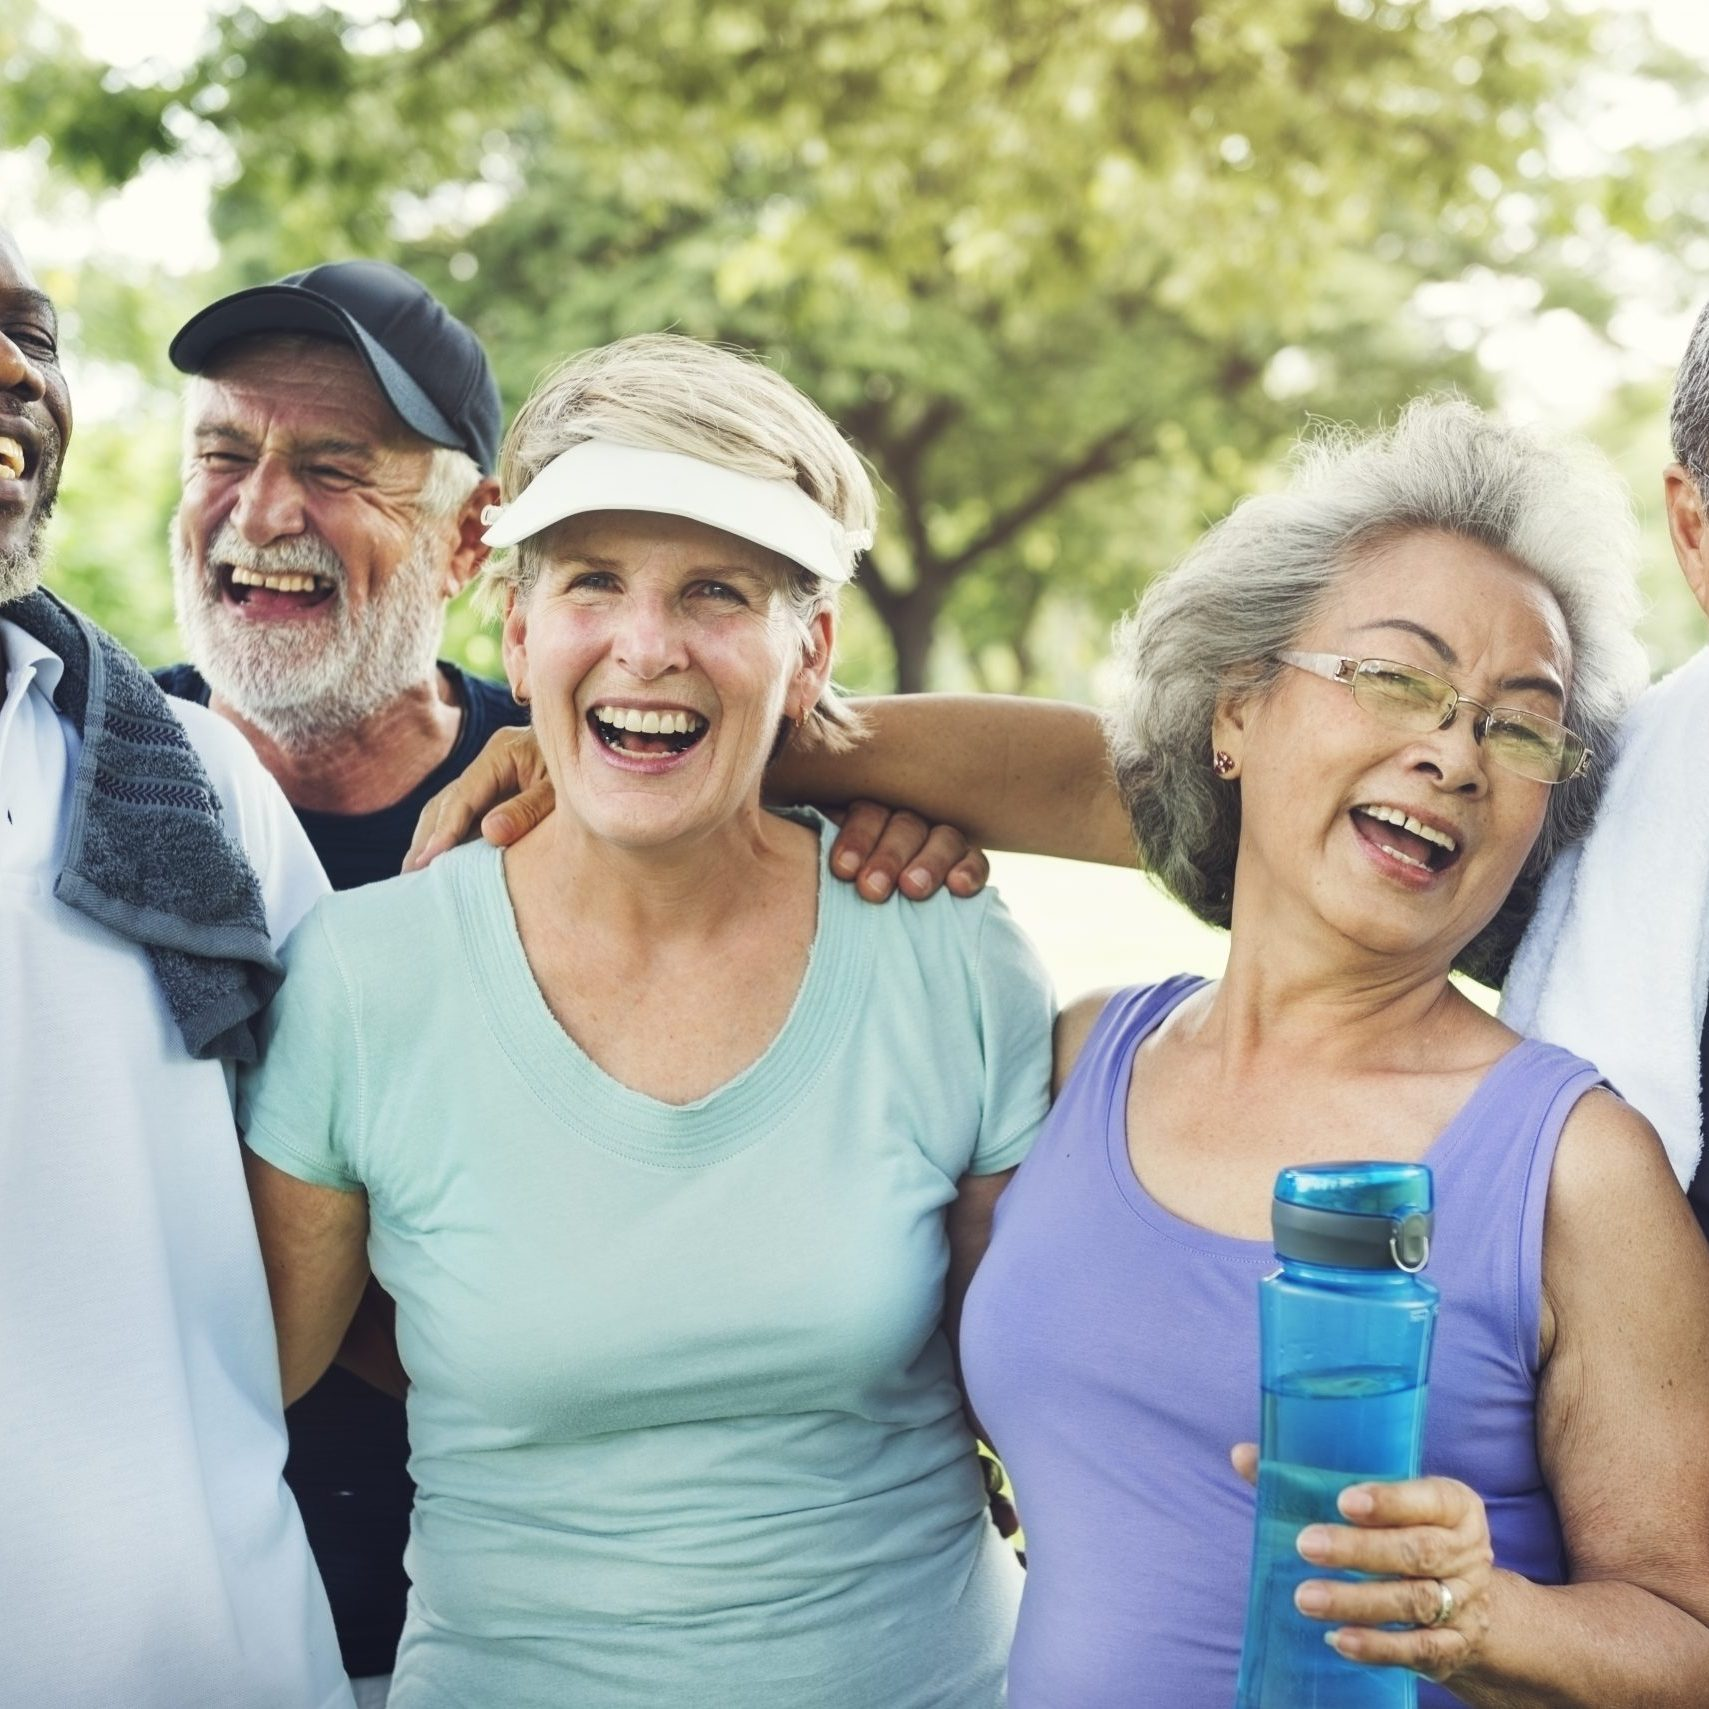 A group of happy elderly people in exercise attire